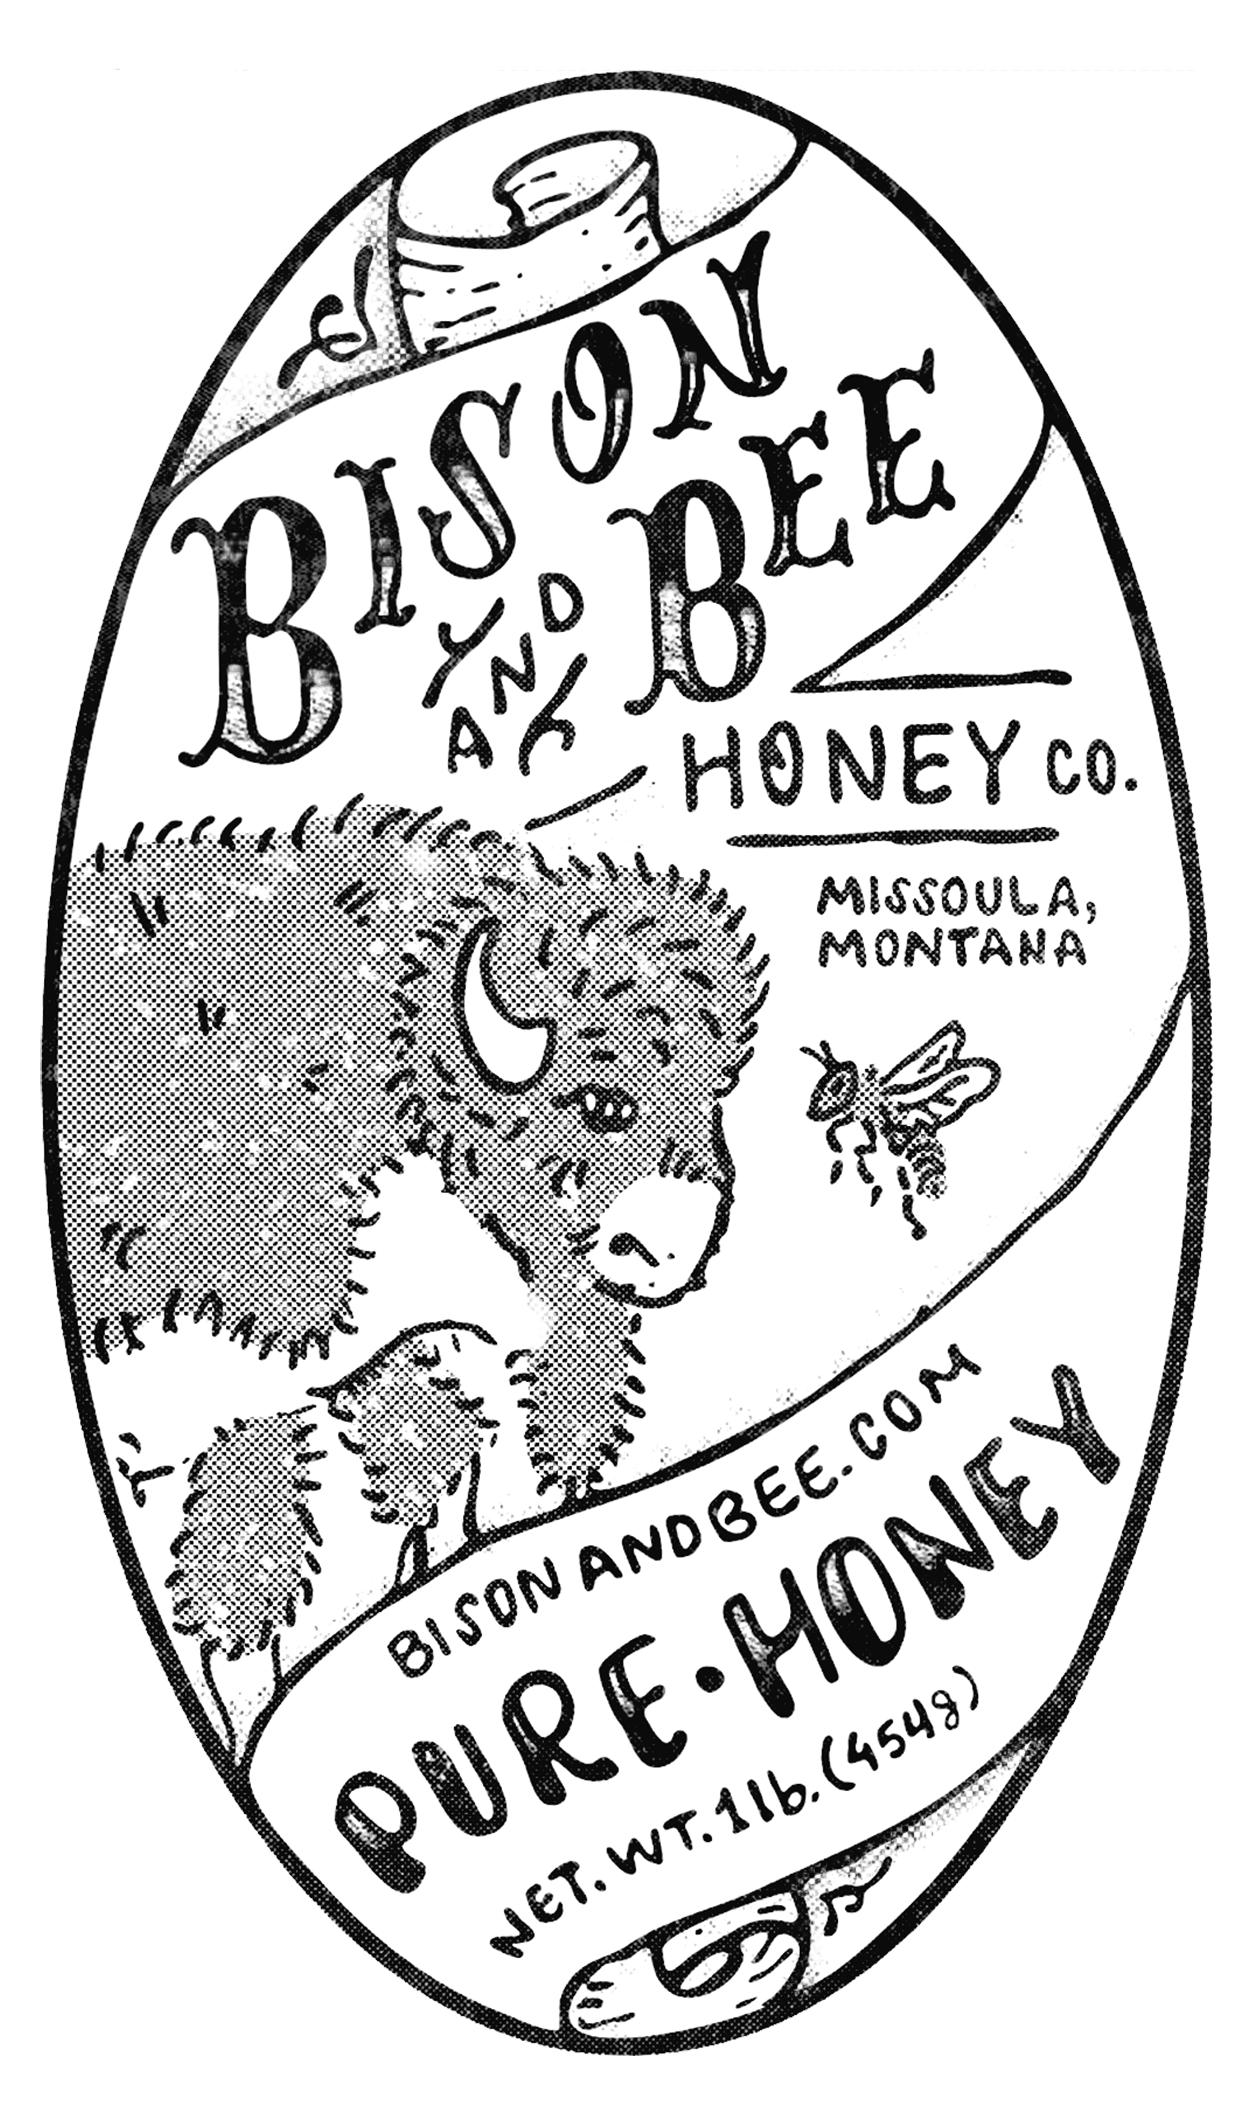 Bison and Bee Honey Co.